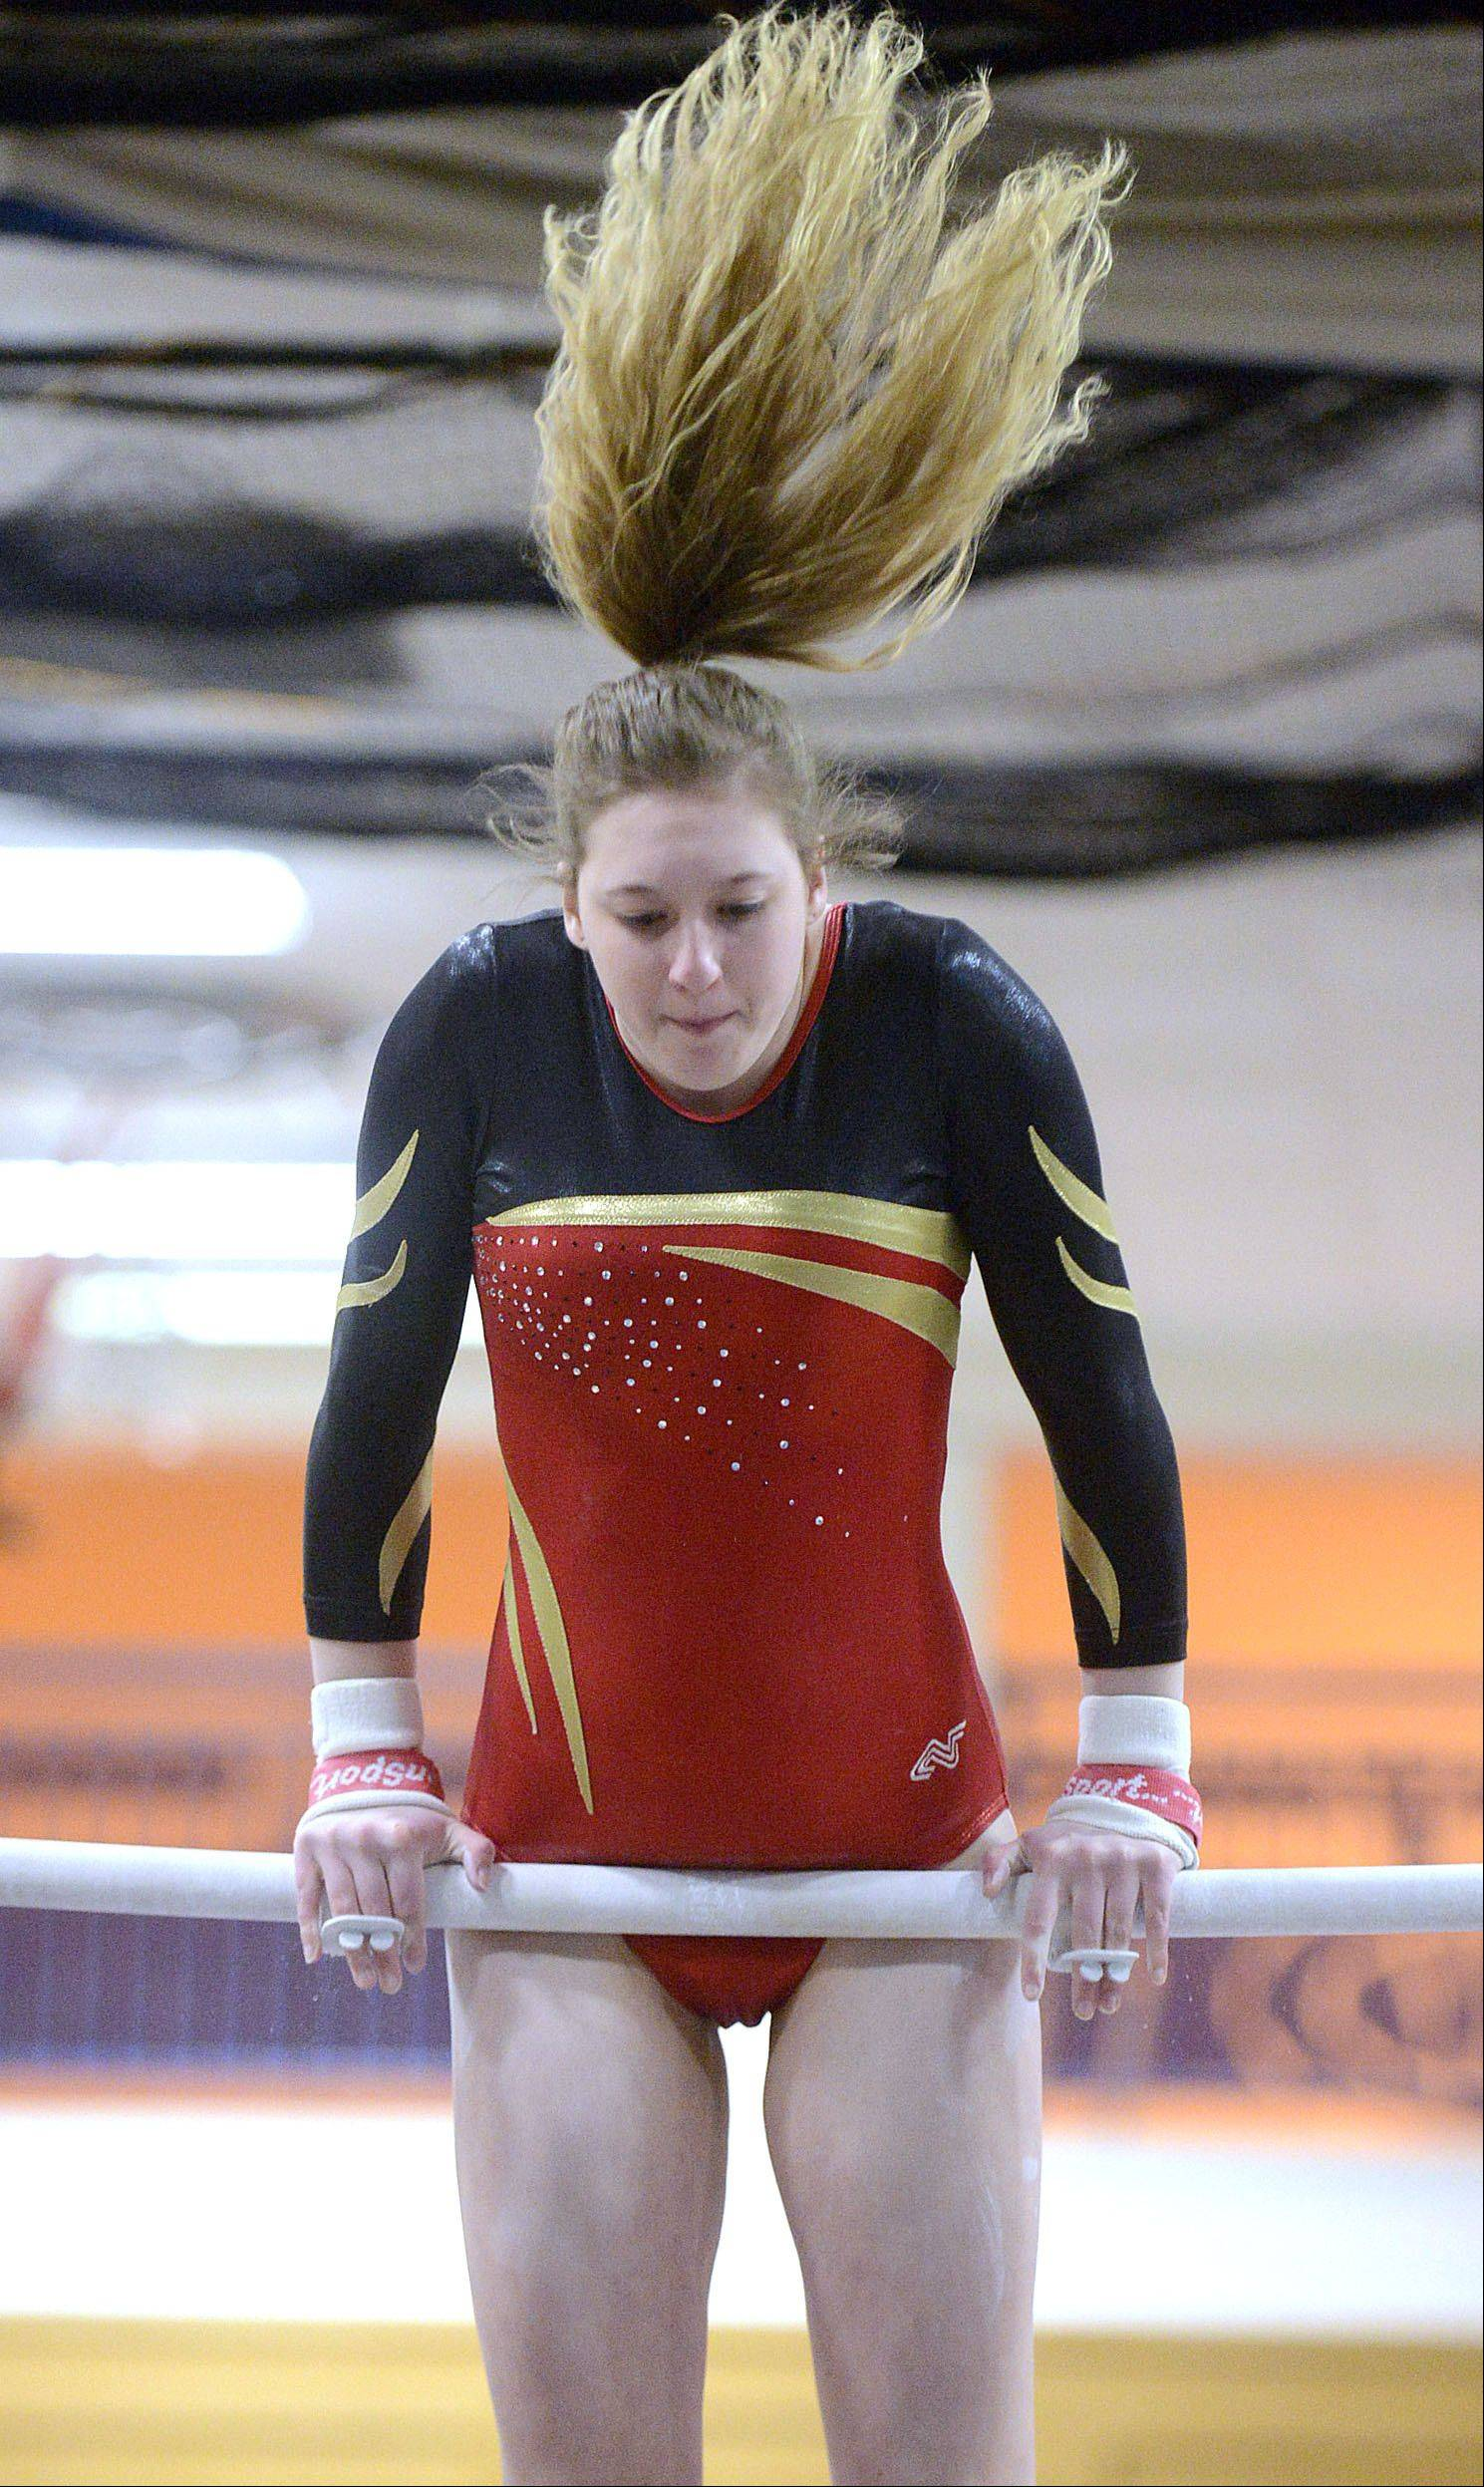 Batavia's Kristi Zabka competes on the uneven bars during the gymnastics meet vs. Geneva on Wednesday, January 8.